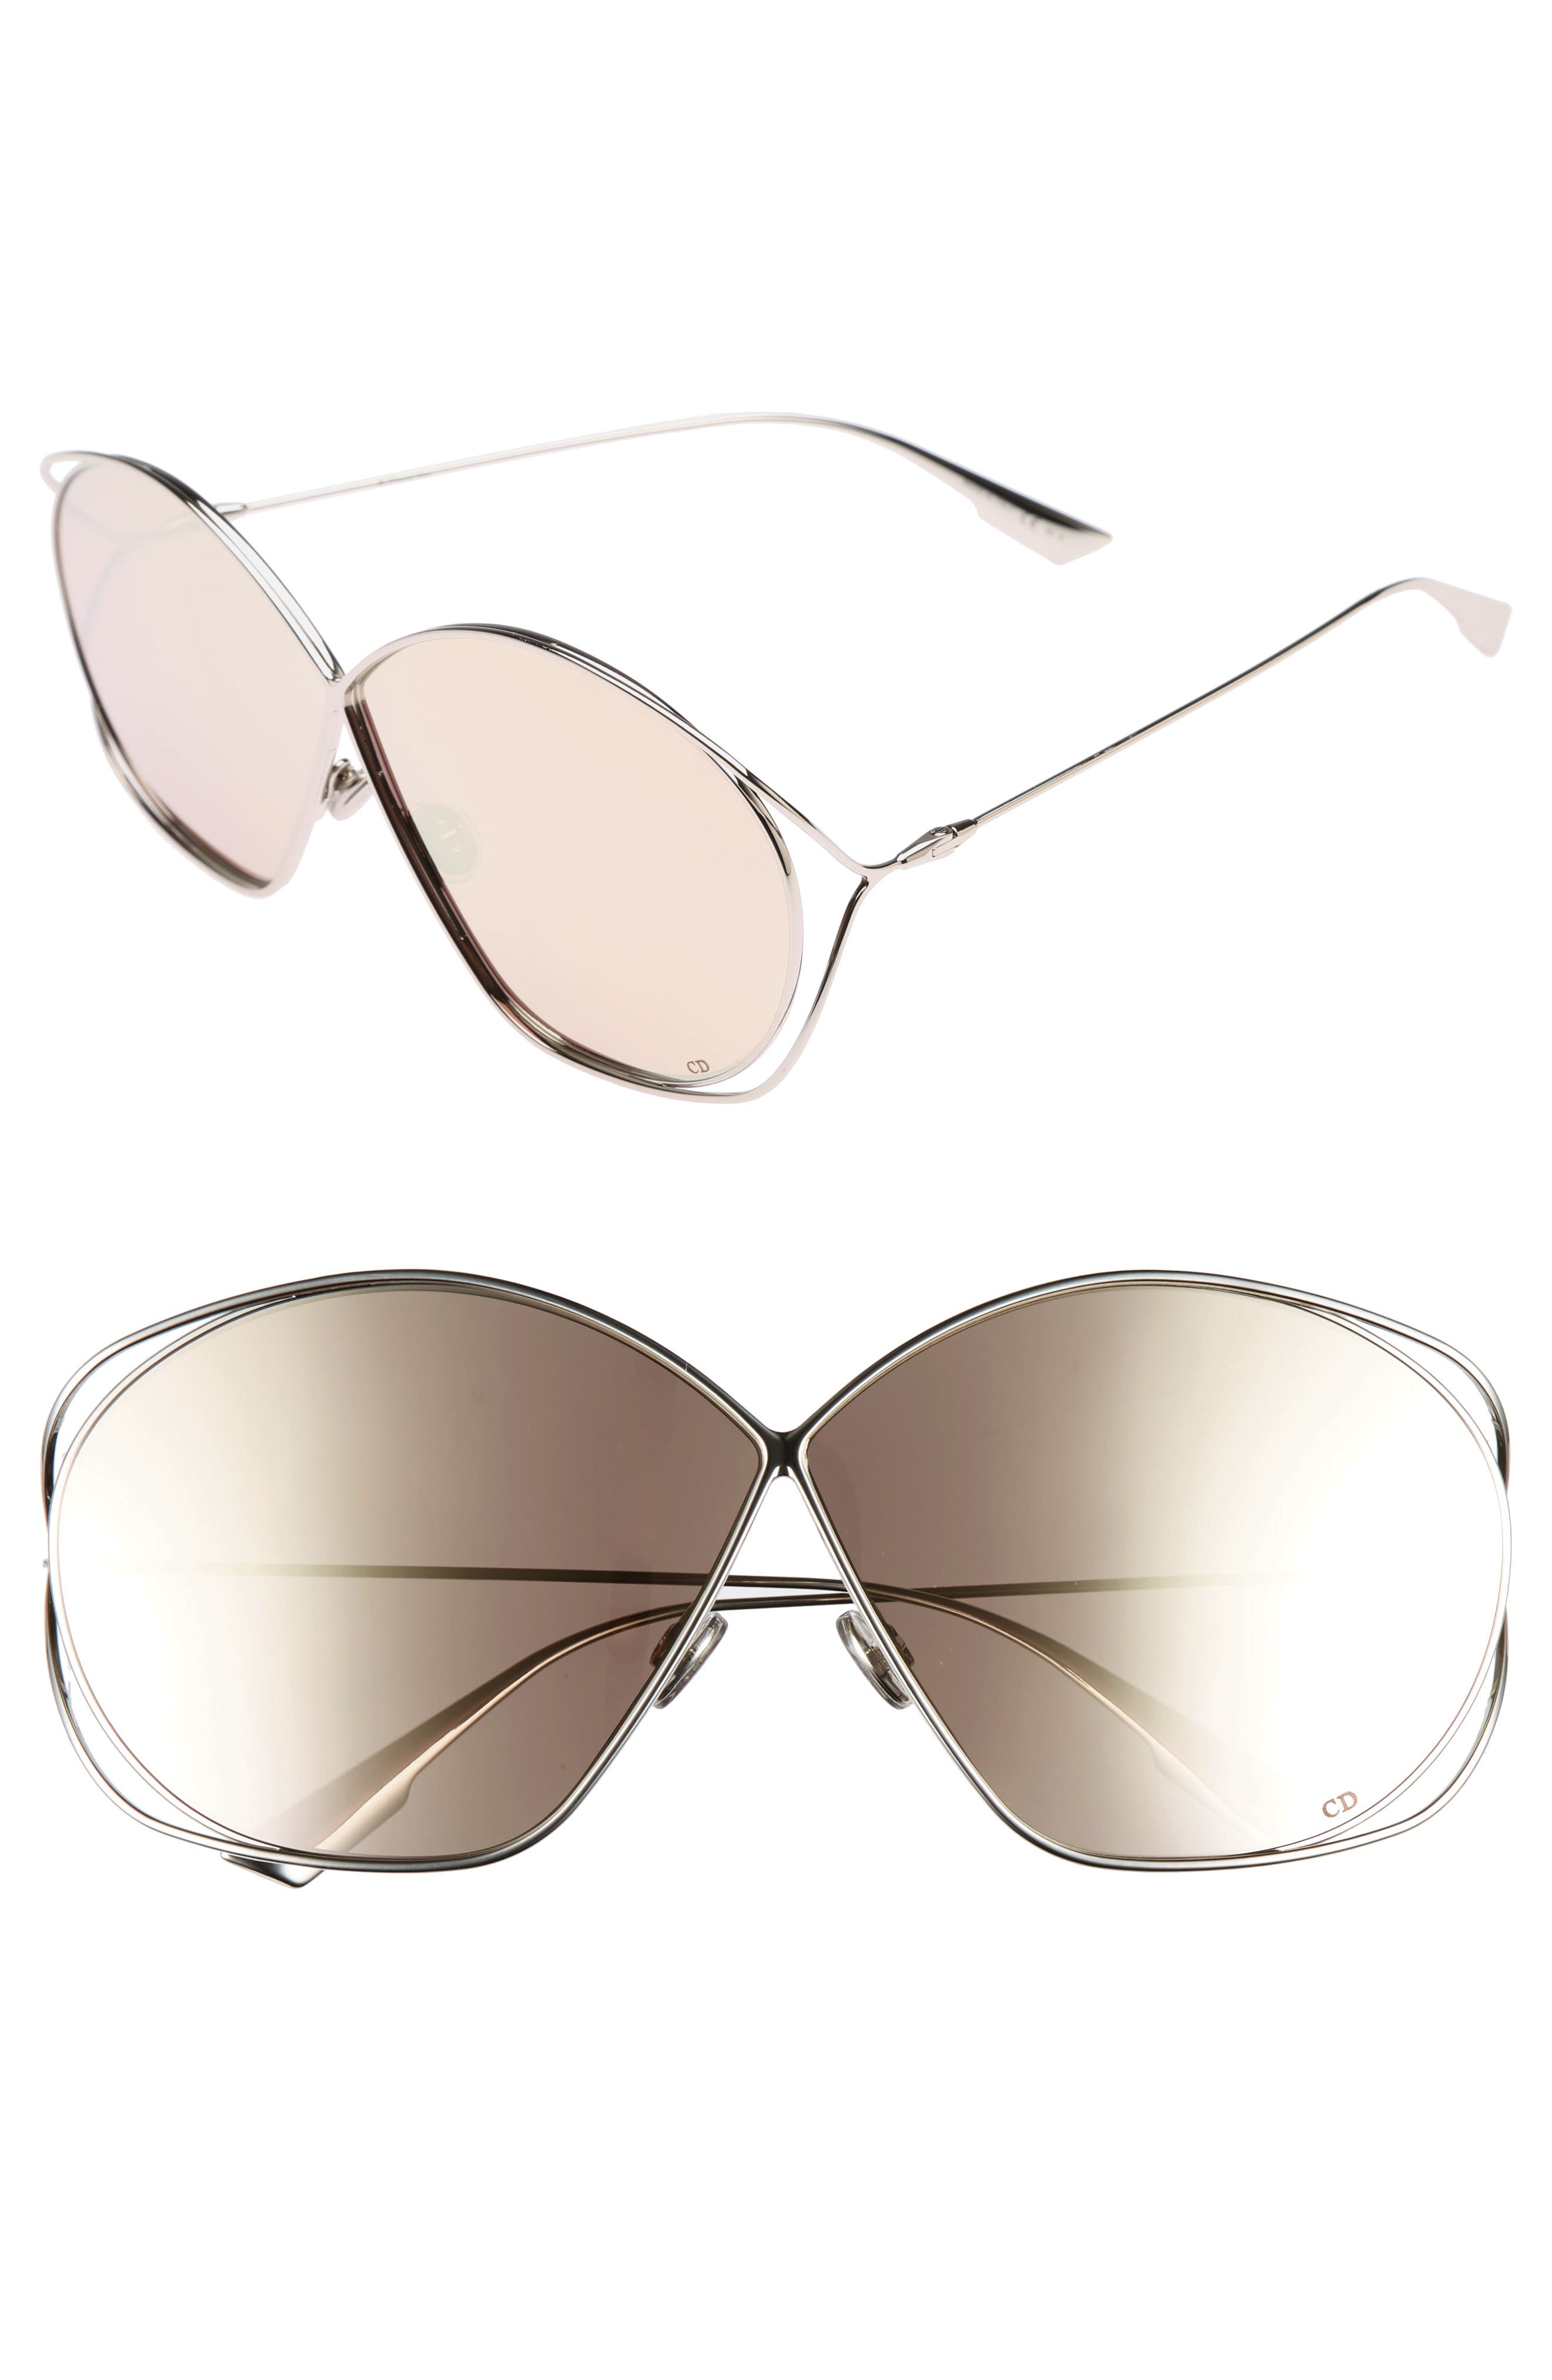 Stellaire 2 68mm Oversize Butterfly Sunglasses,                             Main thumbnail 1, color,                             Palladium